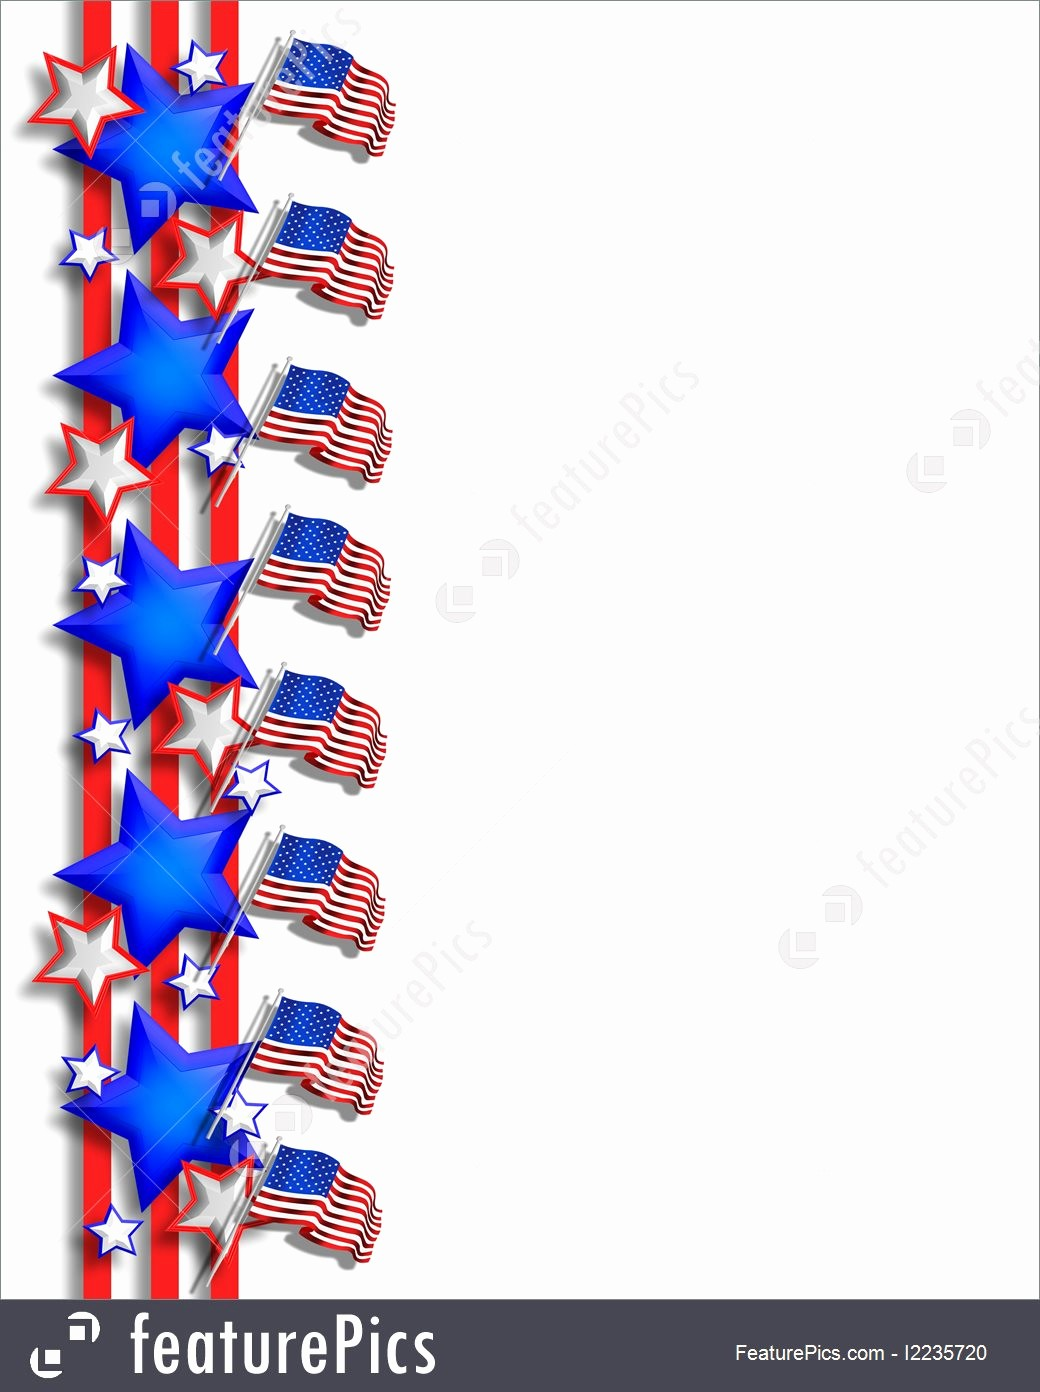 Closed 4th Of July Template Inspirational Patriotic Border July 4th Illustration